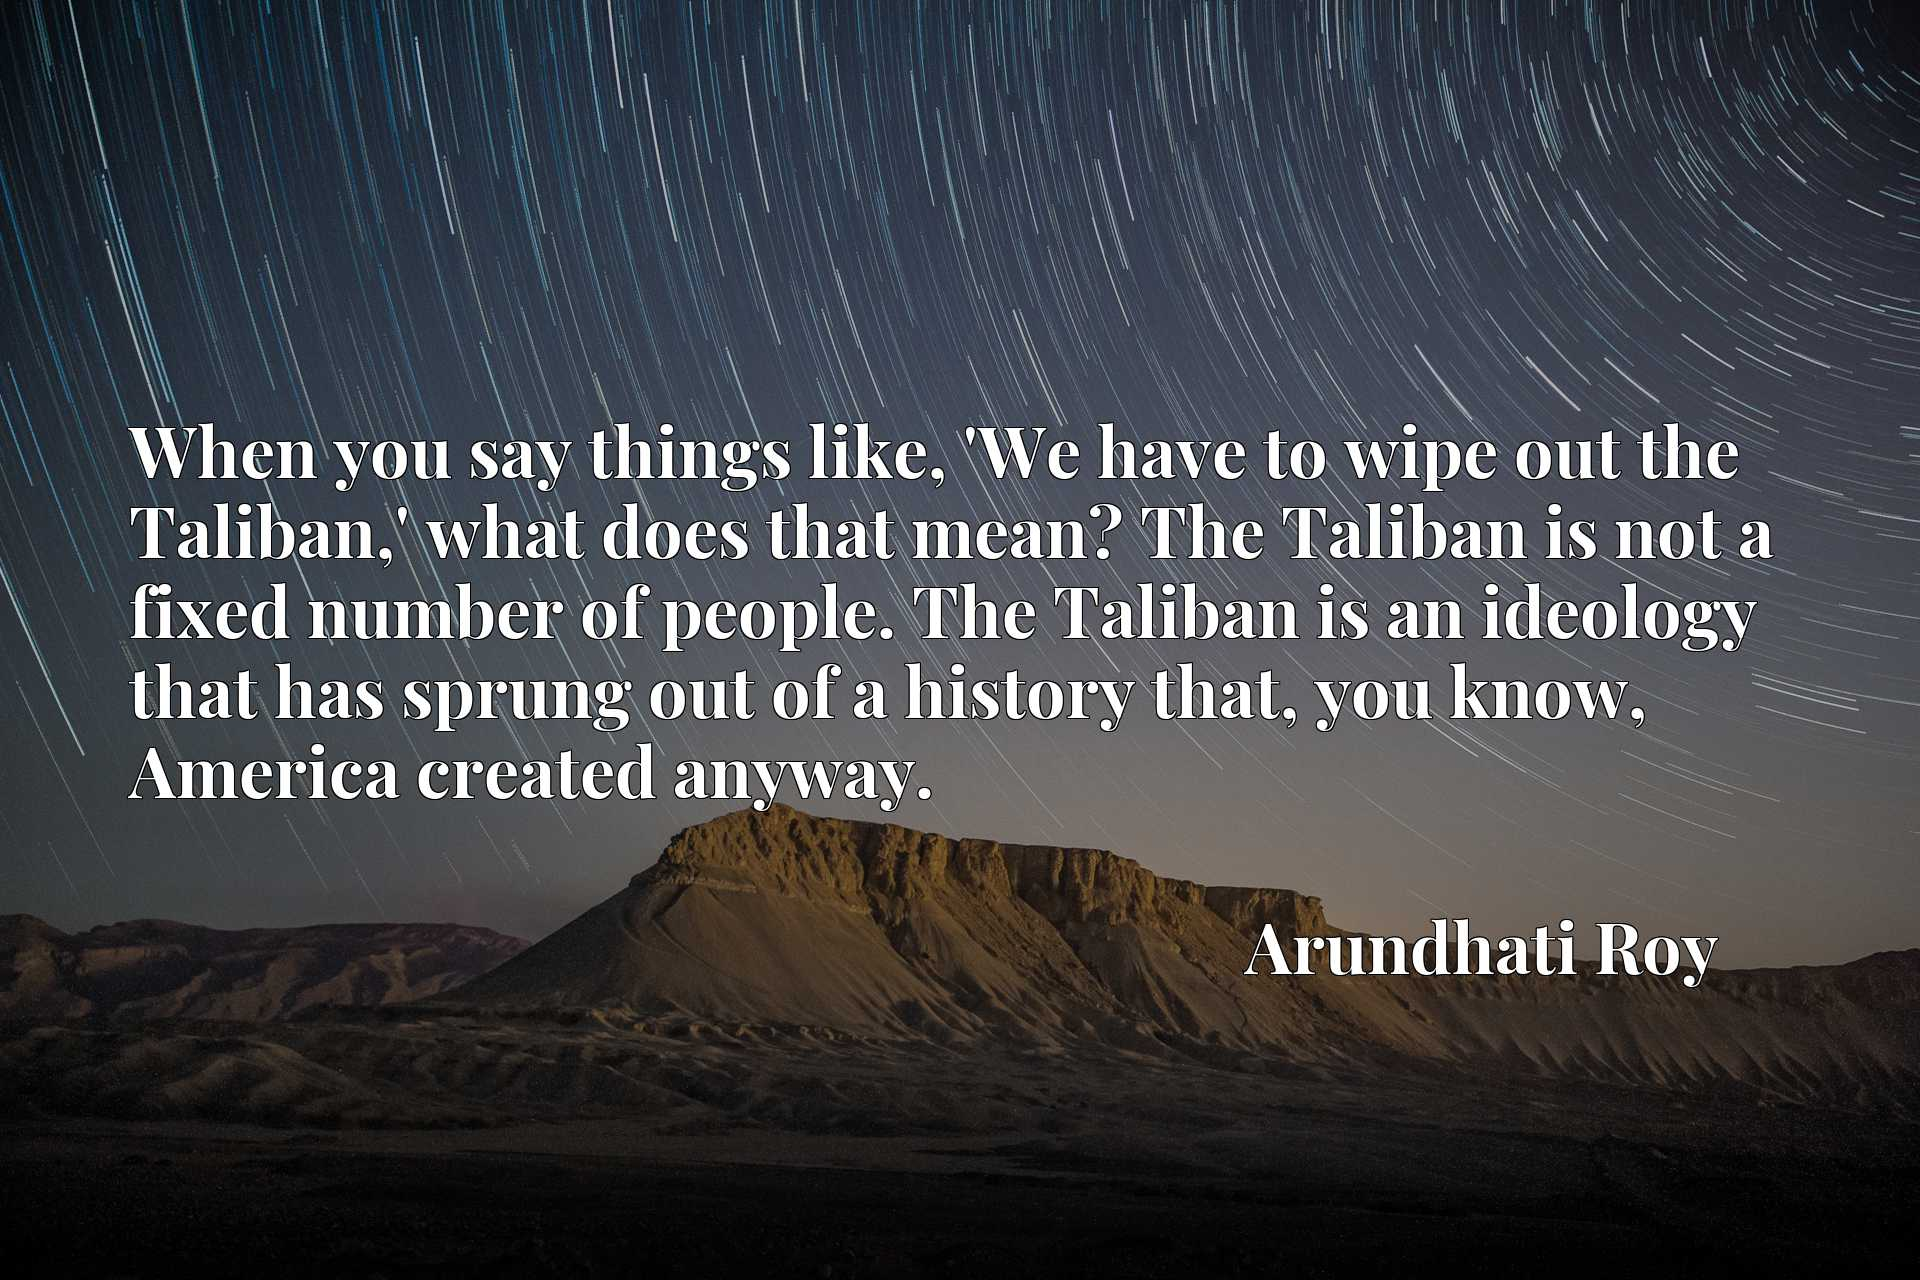 When you say things like, 'We have to wipe out the Taliban,' what does that mean? The Taliban is not a fixed number of people. The Taliban is an ideology that has sprung out of a history that, you know, America created anyway.